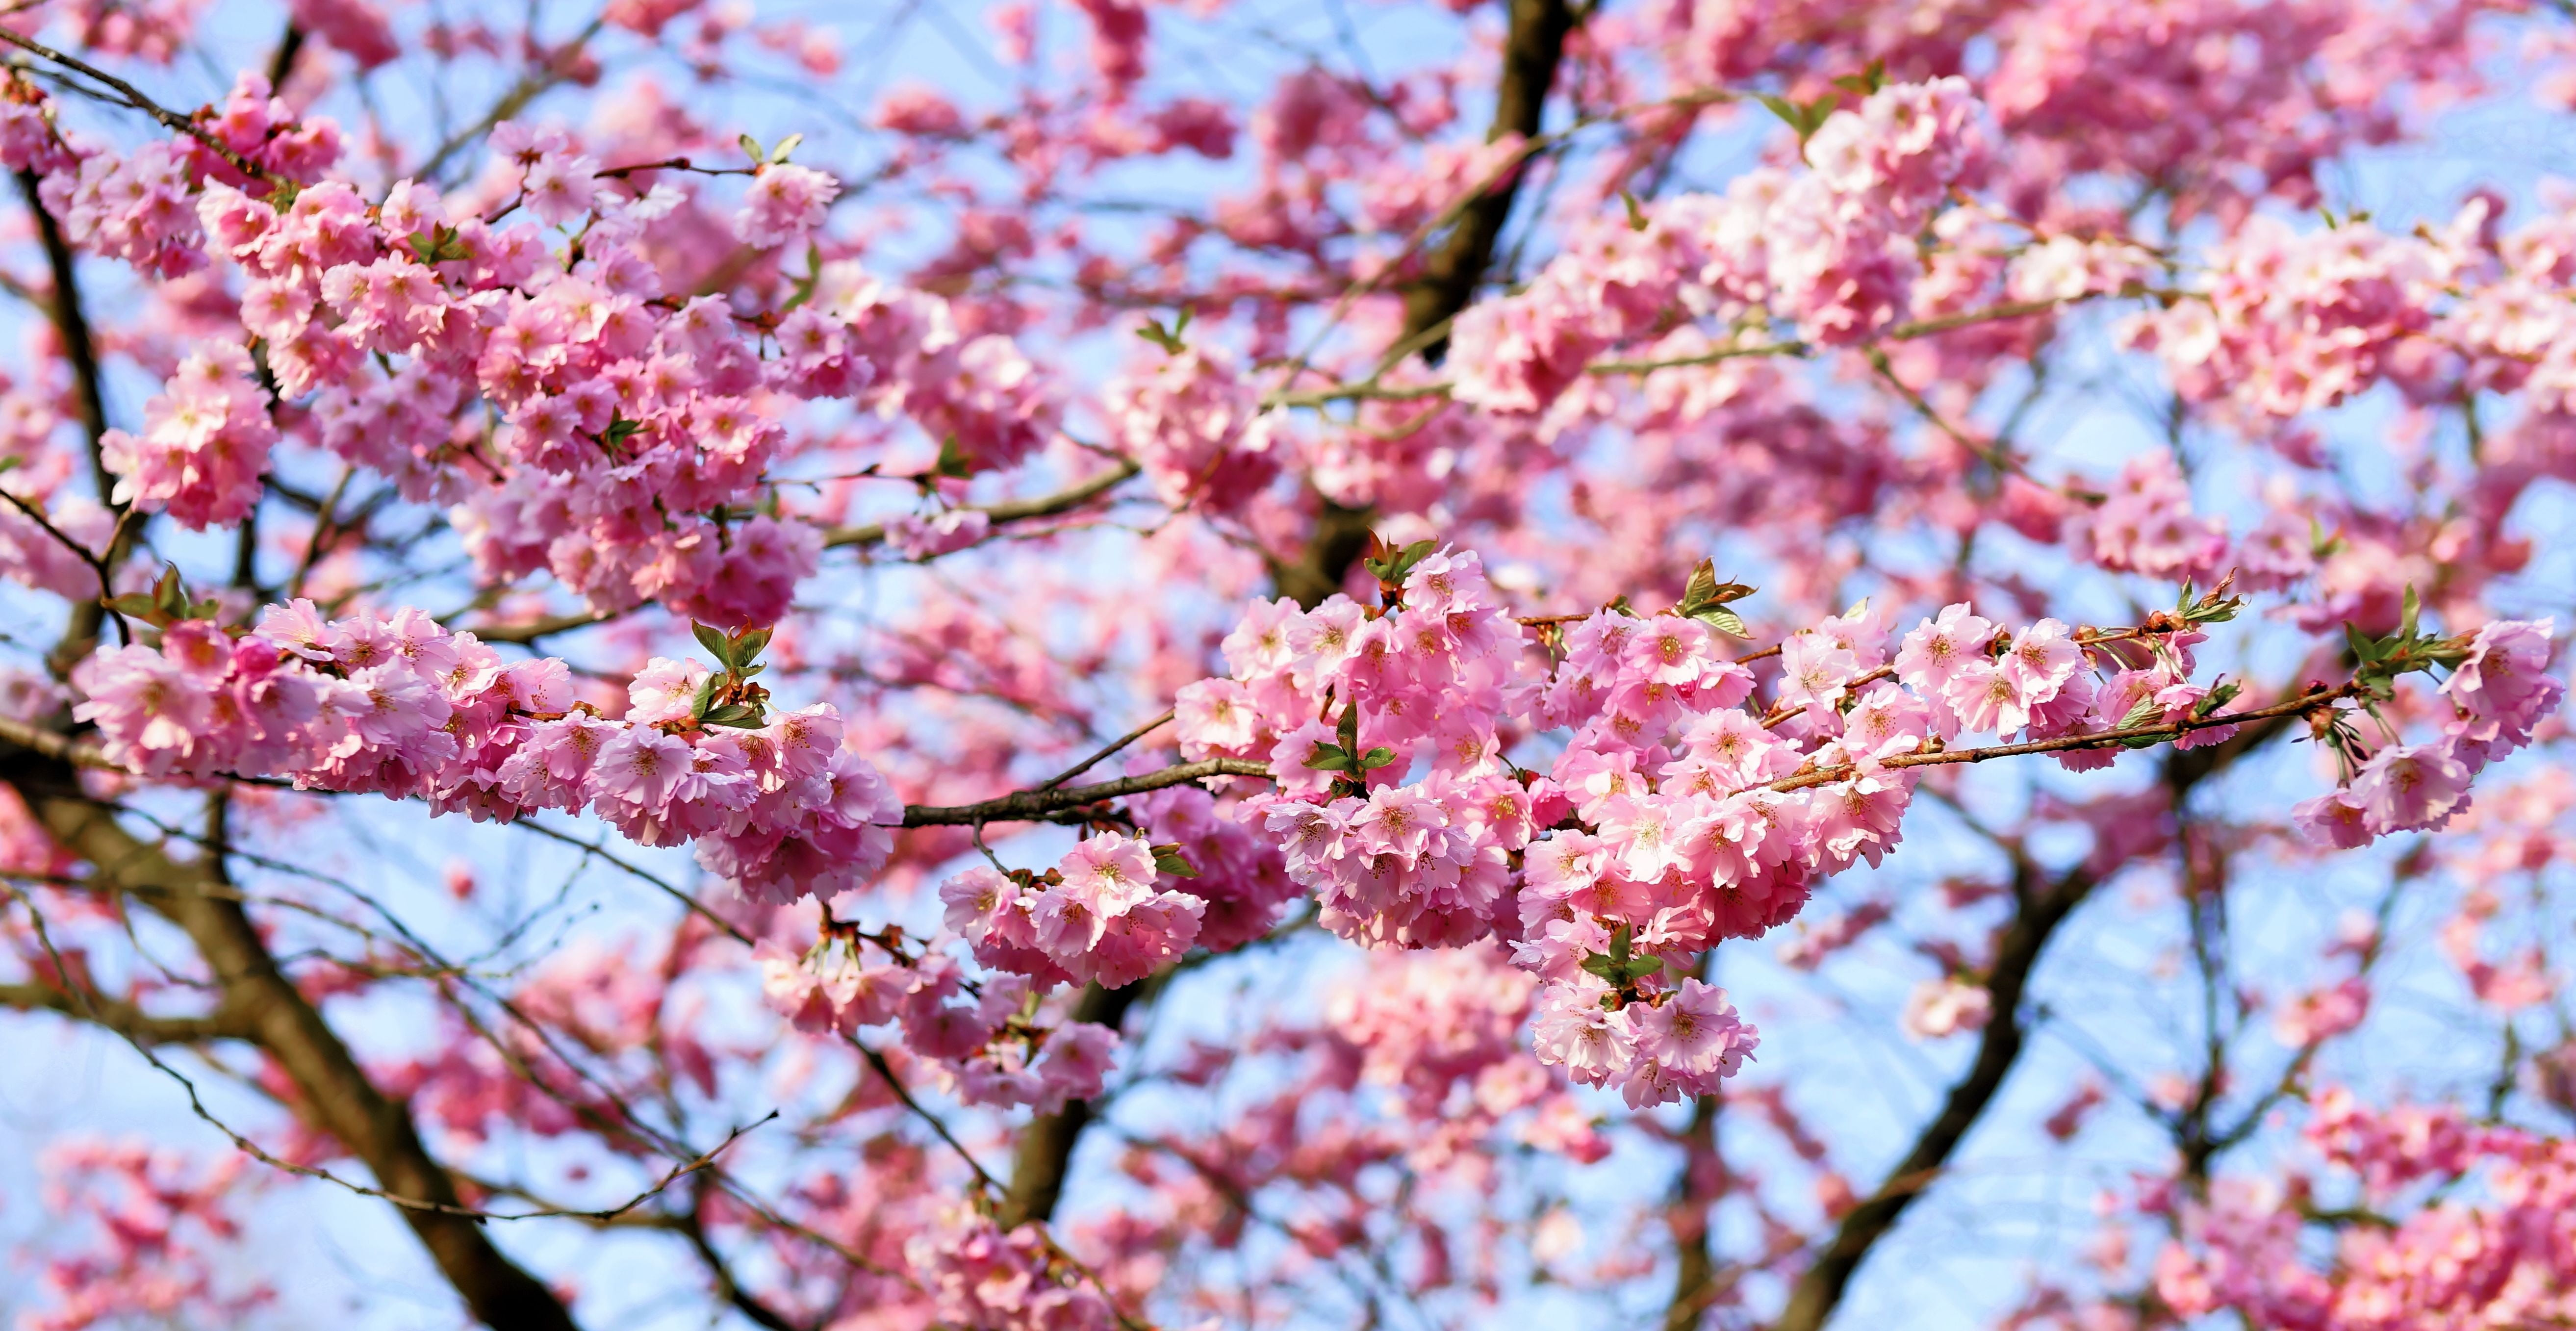 Kirschbaum Wallpaper Pink Cherry Blossom In Bloom At Daytime Hd Wallpaper